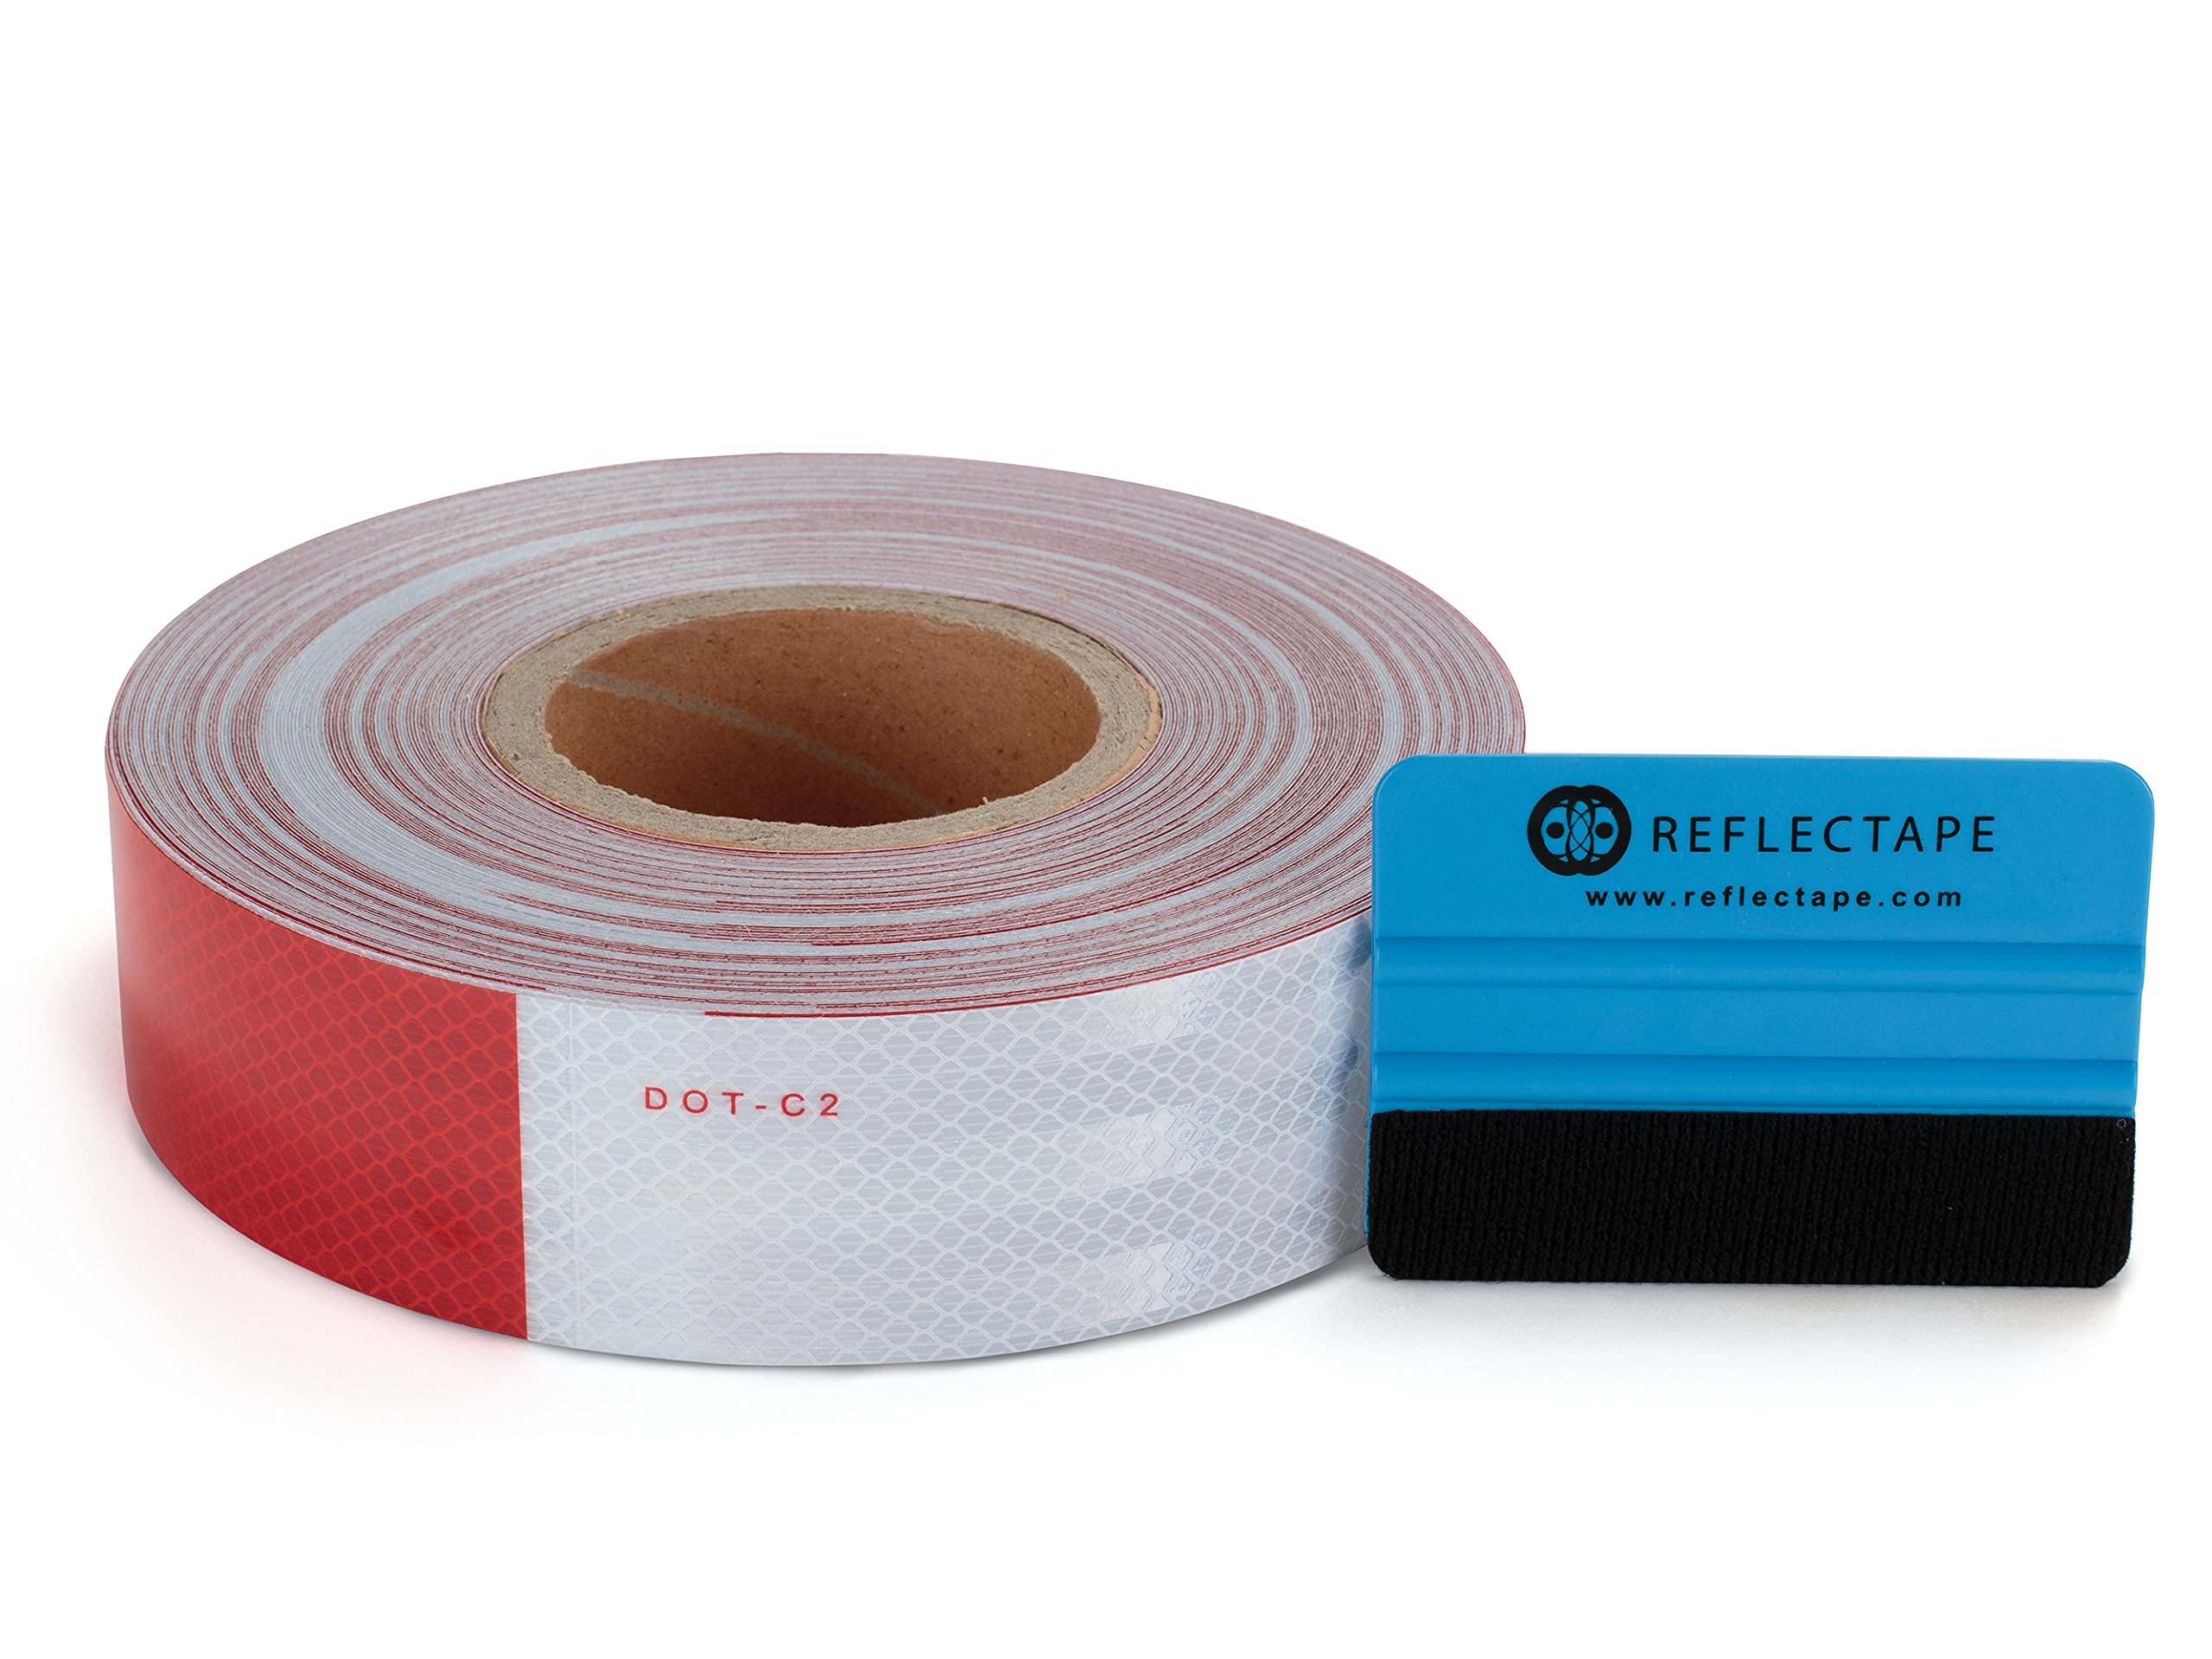 DOT Reflective Tape - 2 inches x 150 feet long - 11 inch Red/7 inch White Safety Strips for Trailer Vehicle Car Truck w/Bonus Applicator by Reflectape